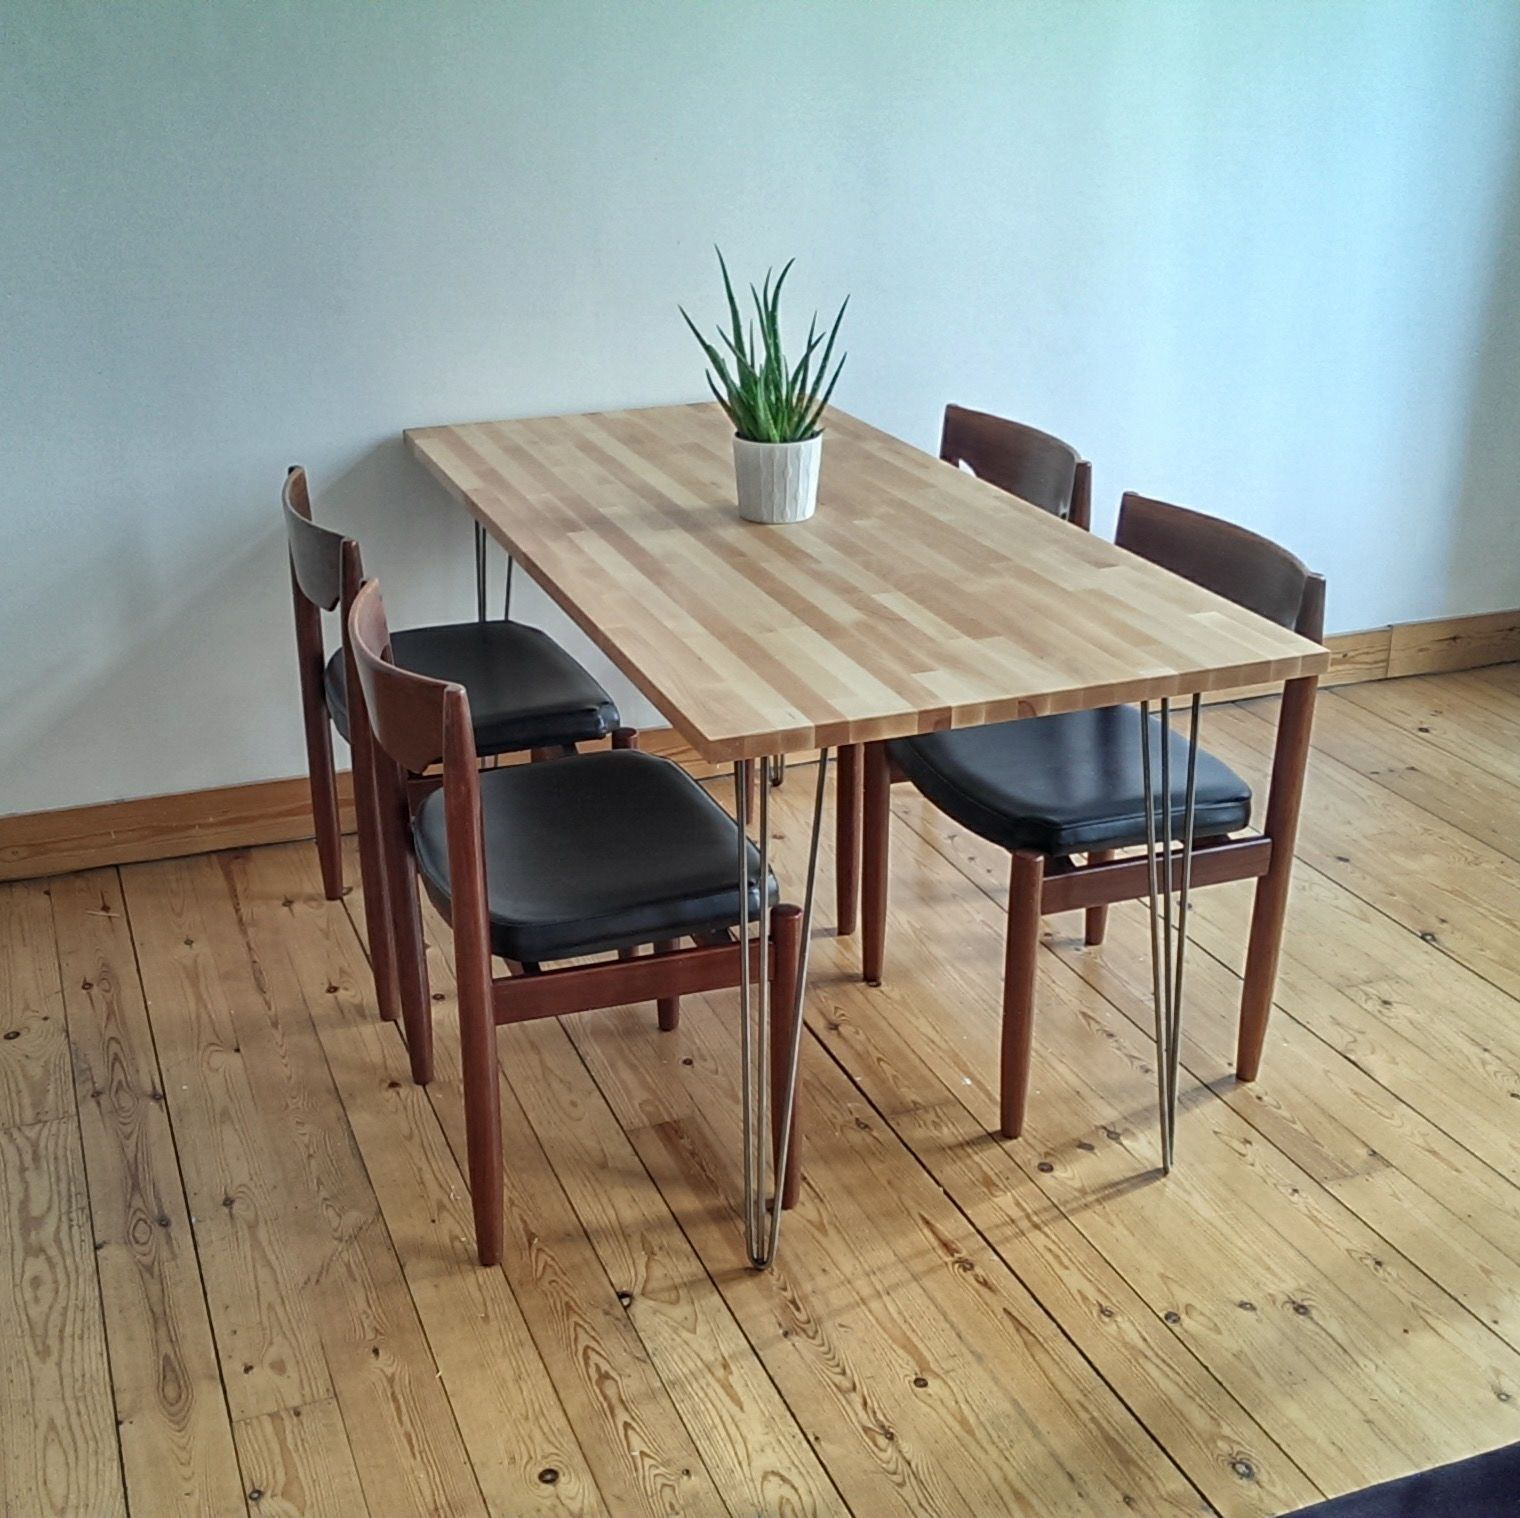 Our Scandinavian Style Dining Table I Made With An IKEA Gerton Tabletop And Hairpin Legs From